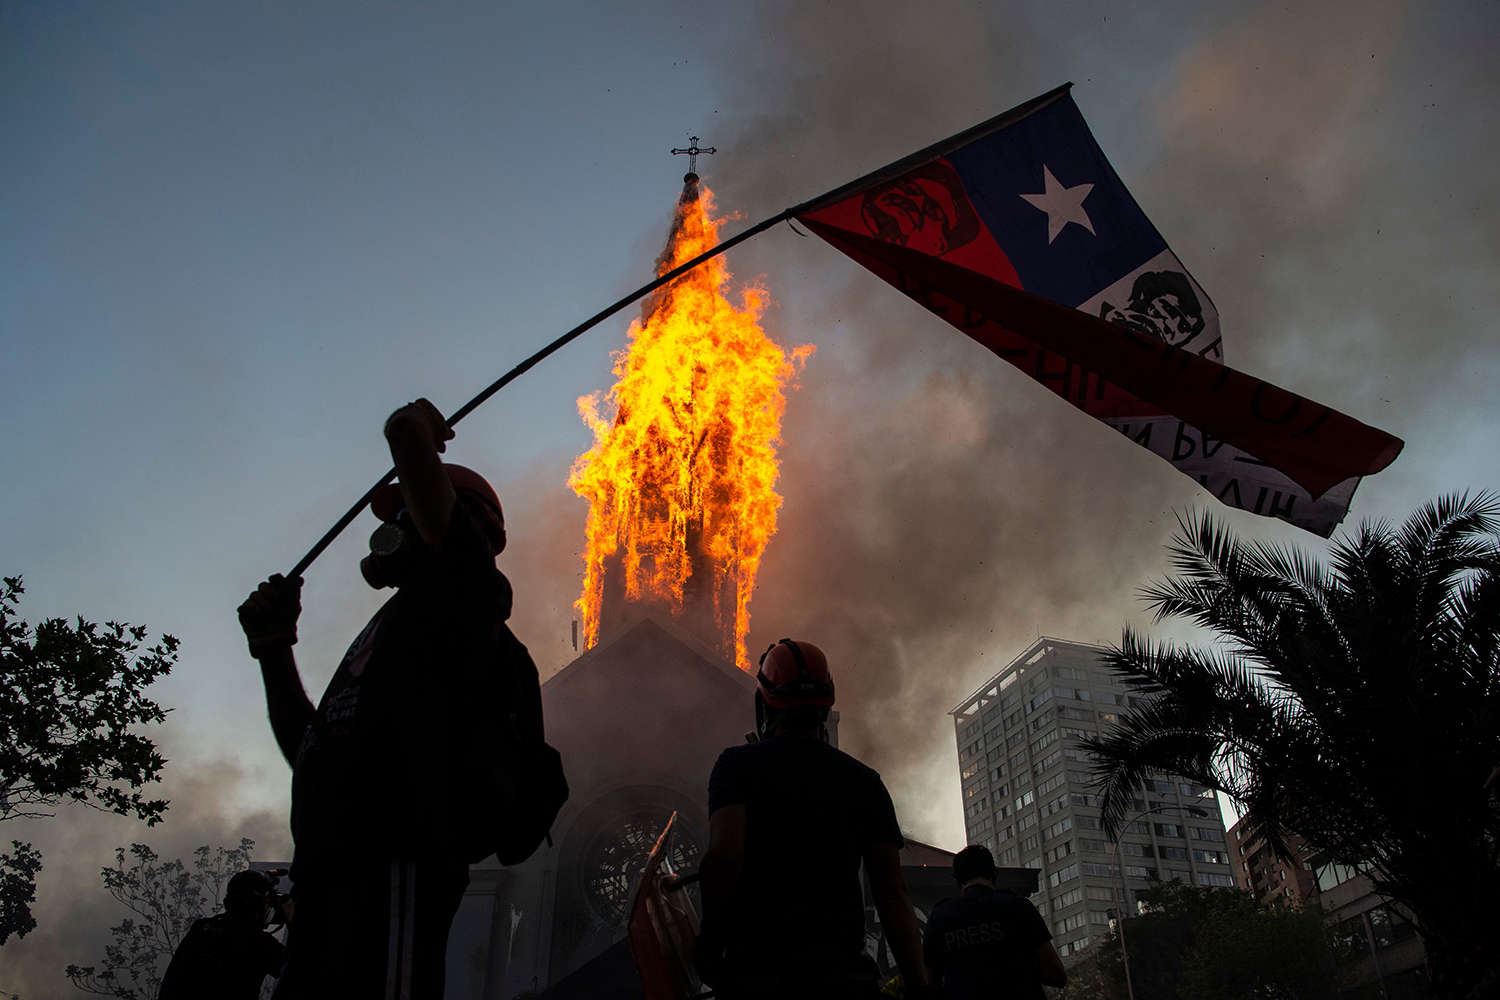 A church burns as demonstrators gather in Santiago on Oct. 18 to mark the first anniversary of the social uprising in Chile. The demonstration was held a week before Chileans successfully voted in a referendum to rewrite the dictatorship-era constitution—one of the key demands when the protest movement began a year ago. MARTIN BERNETTI/AFP via Getty Images